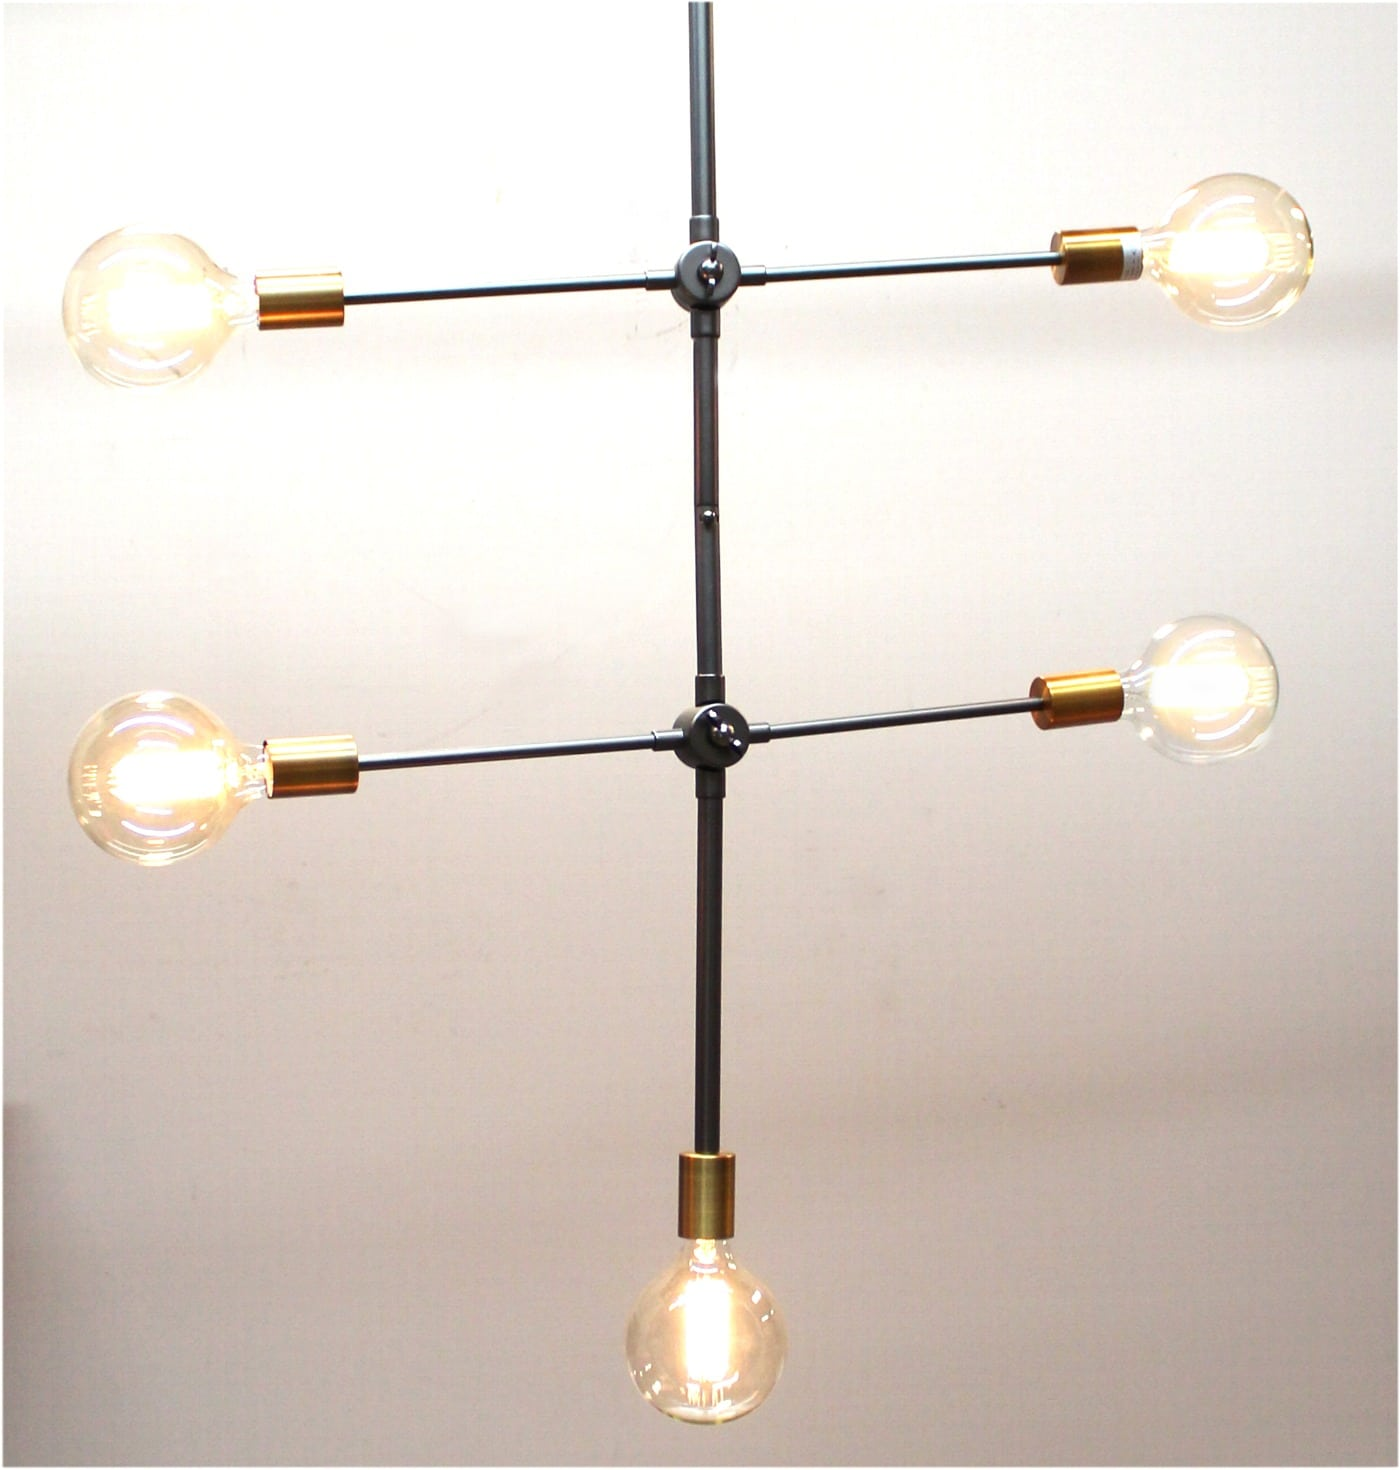 Preferred Contemporary Pendant Light 5 Arms Chandelier Mid Century Modern  KF65